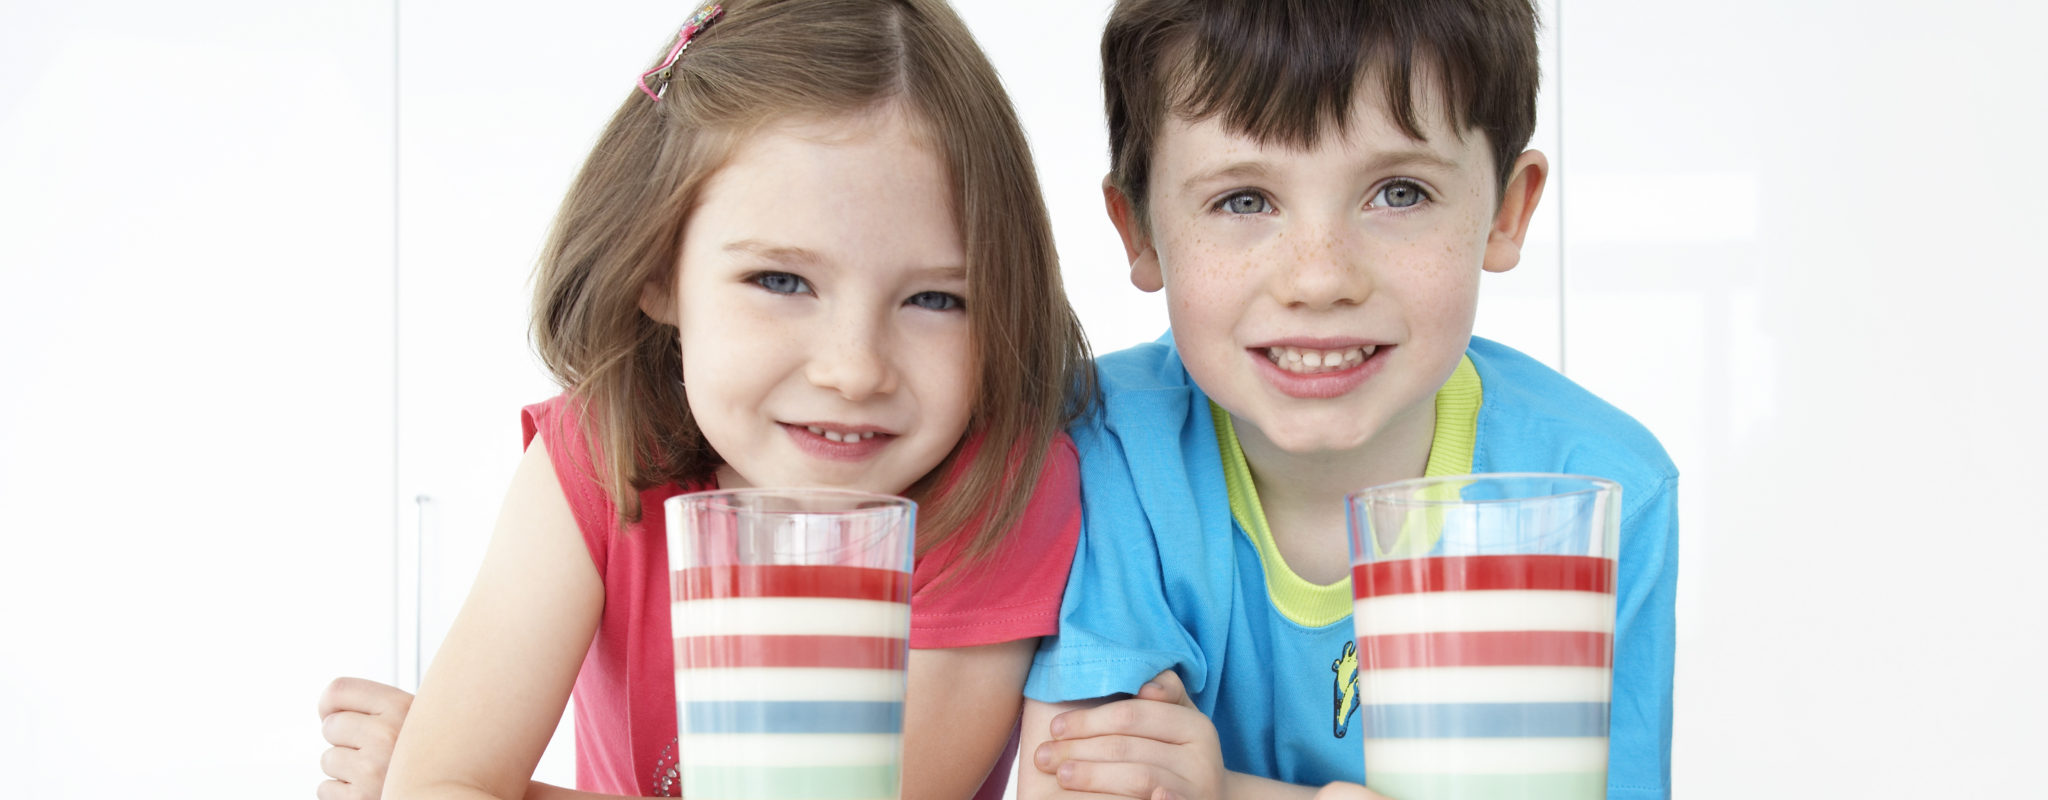 Boy and girl drink milk with lots of vitamin D and calcium